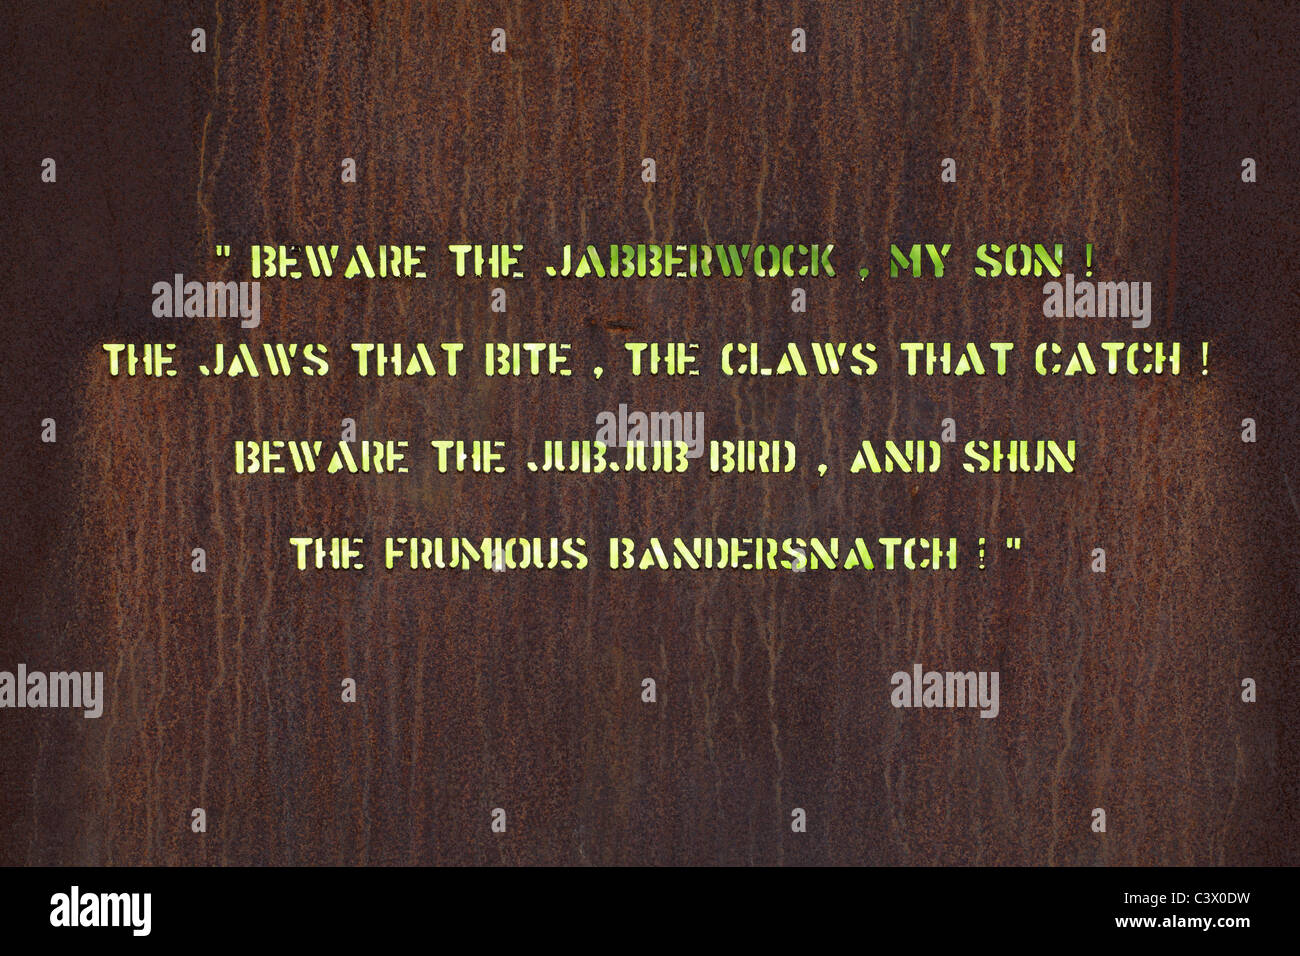 Part Of The Jabberwocky Poem By Lewis Carroll Cut Out In A